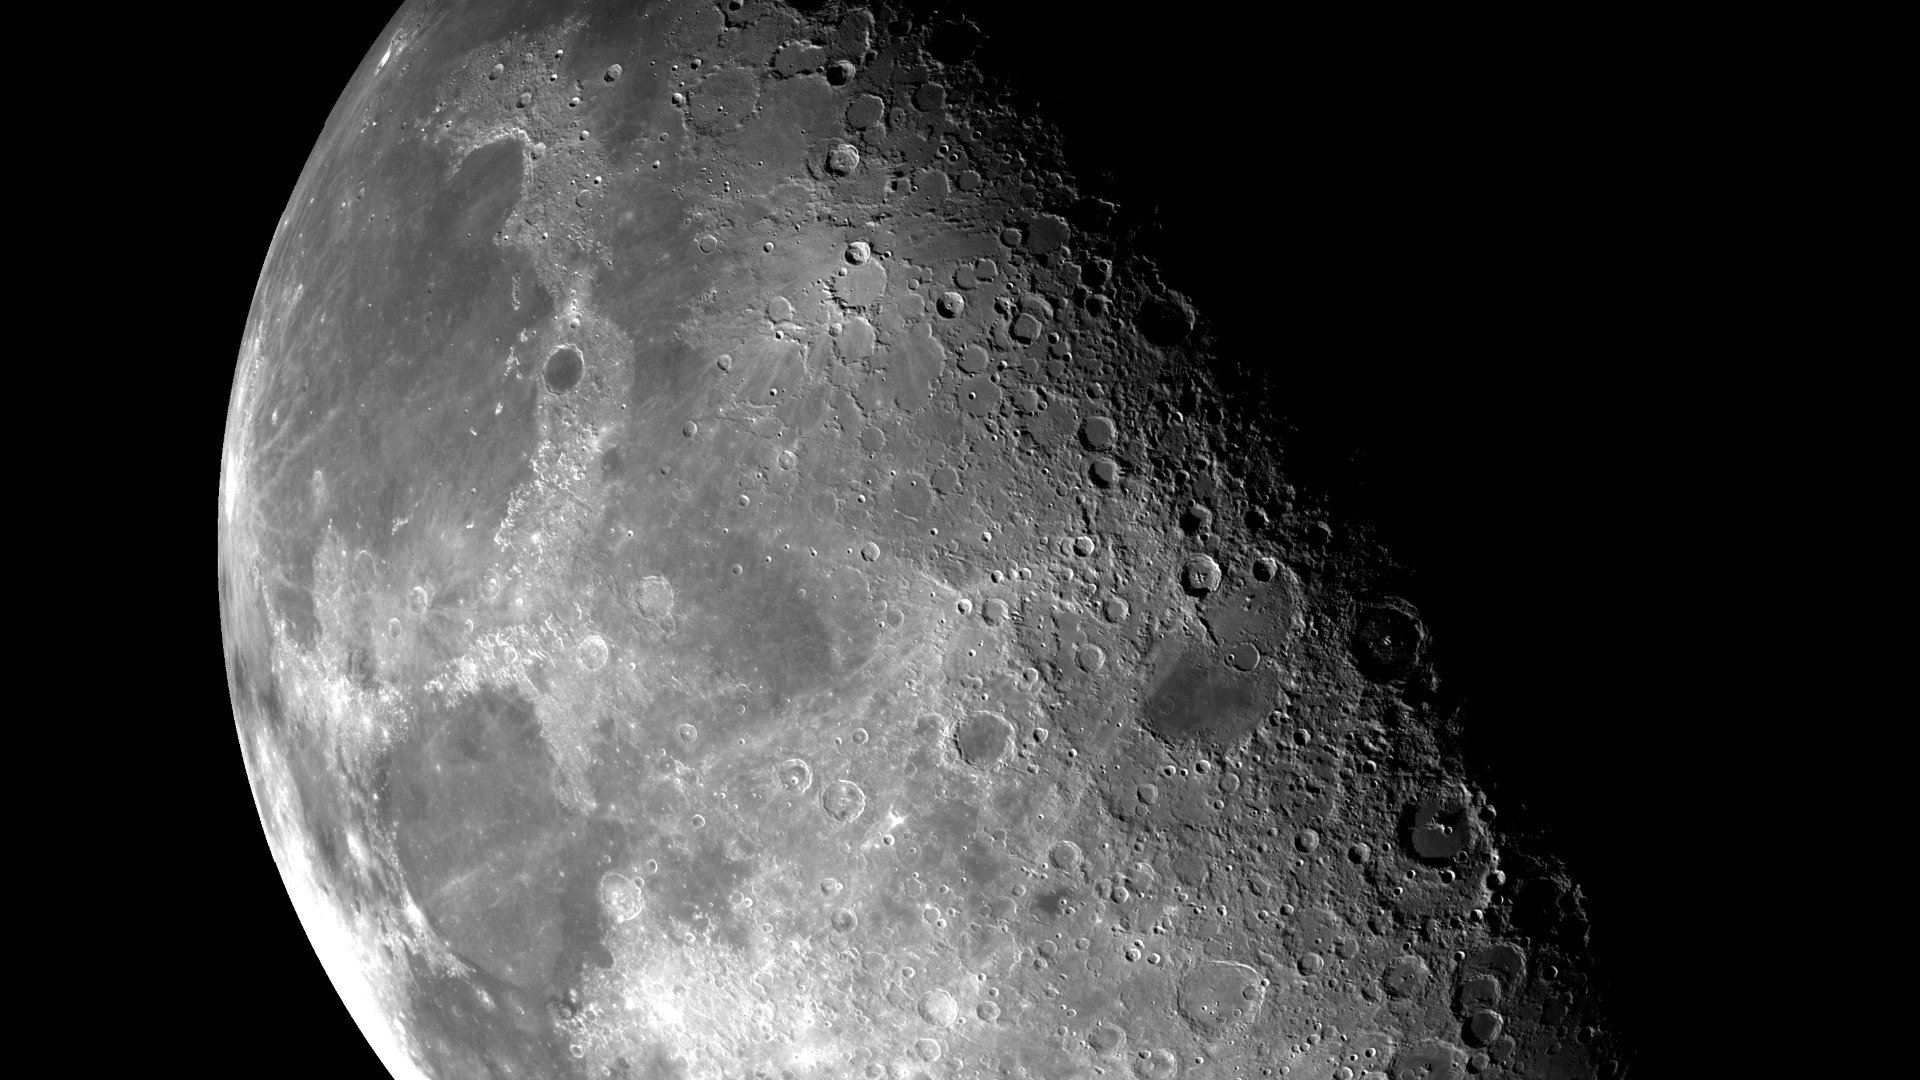 Free Download Moon Wallpaper Id 393935 Hd 1920x1080 For Computer